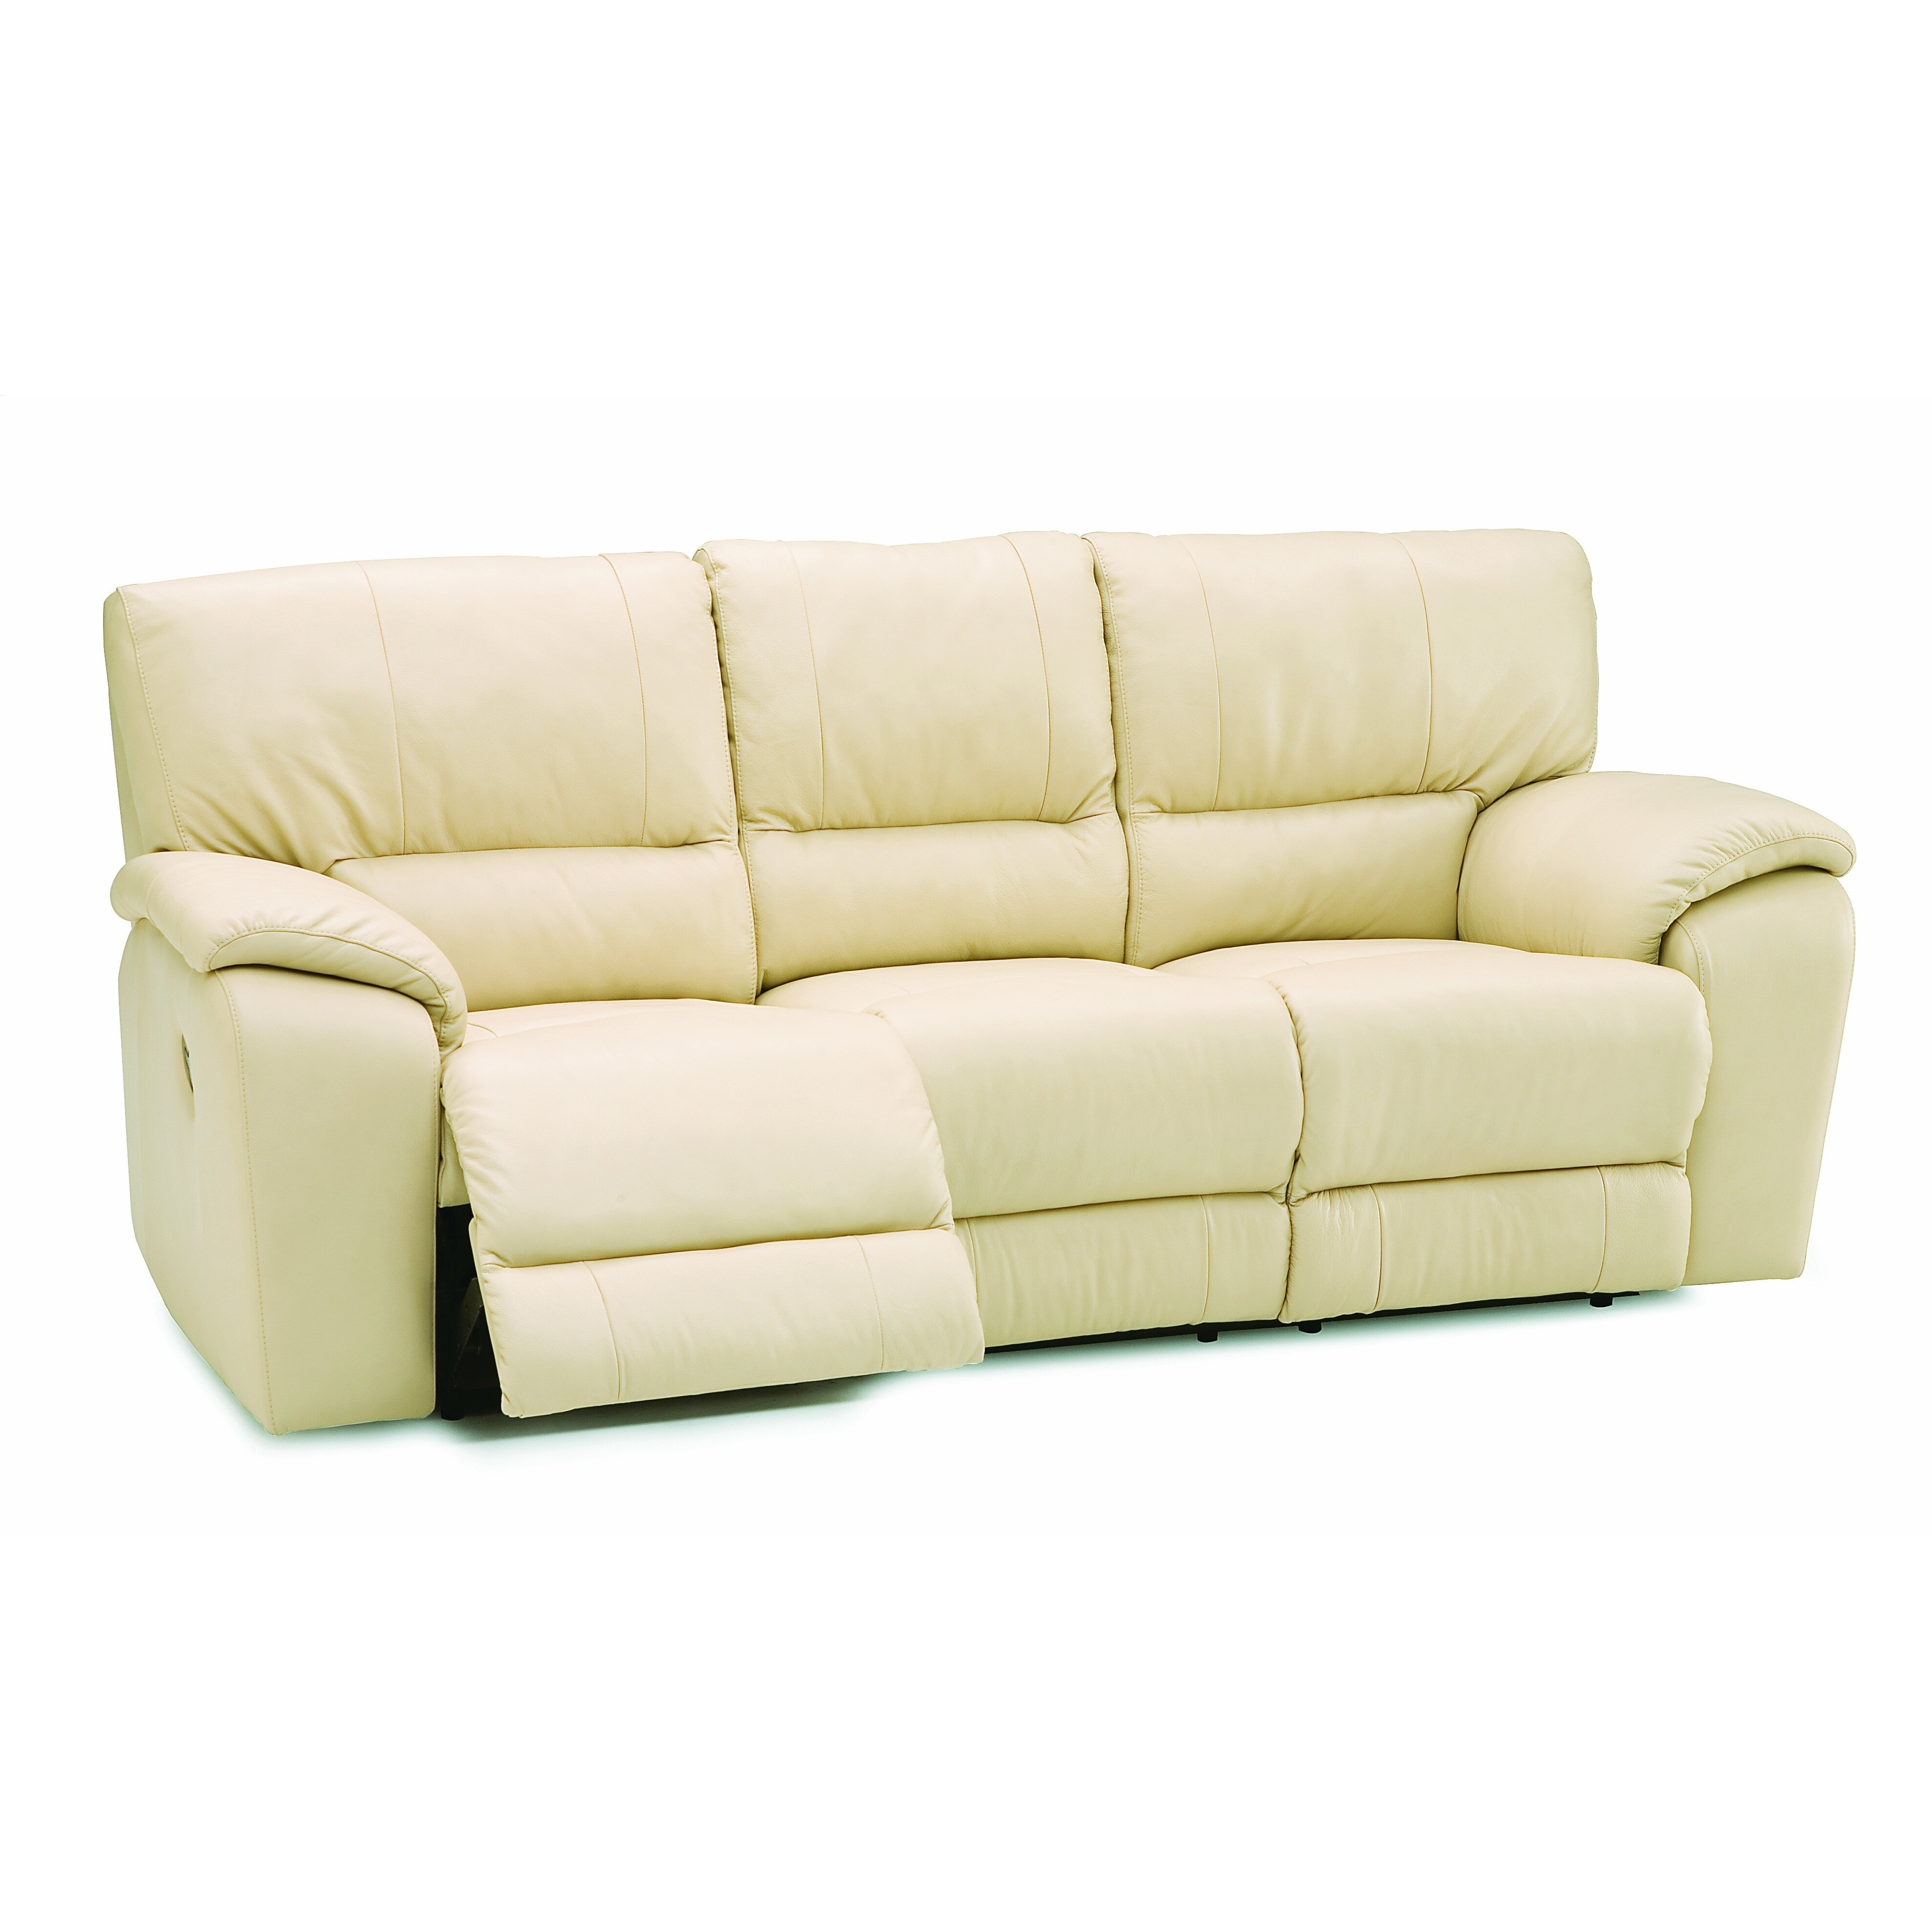 Palliser sofa review palliser sofa review www energywarden for I furniture reviews